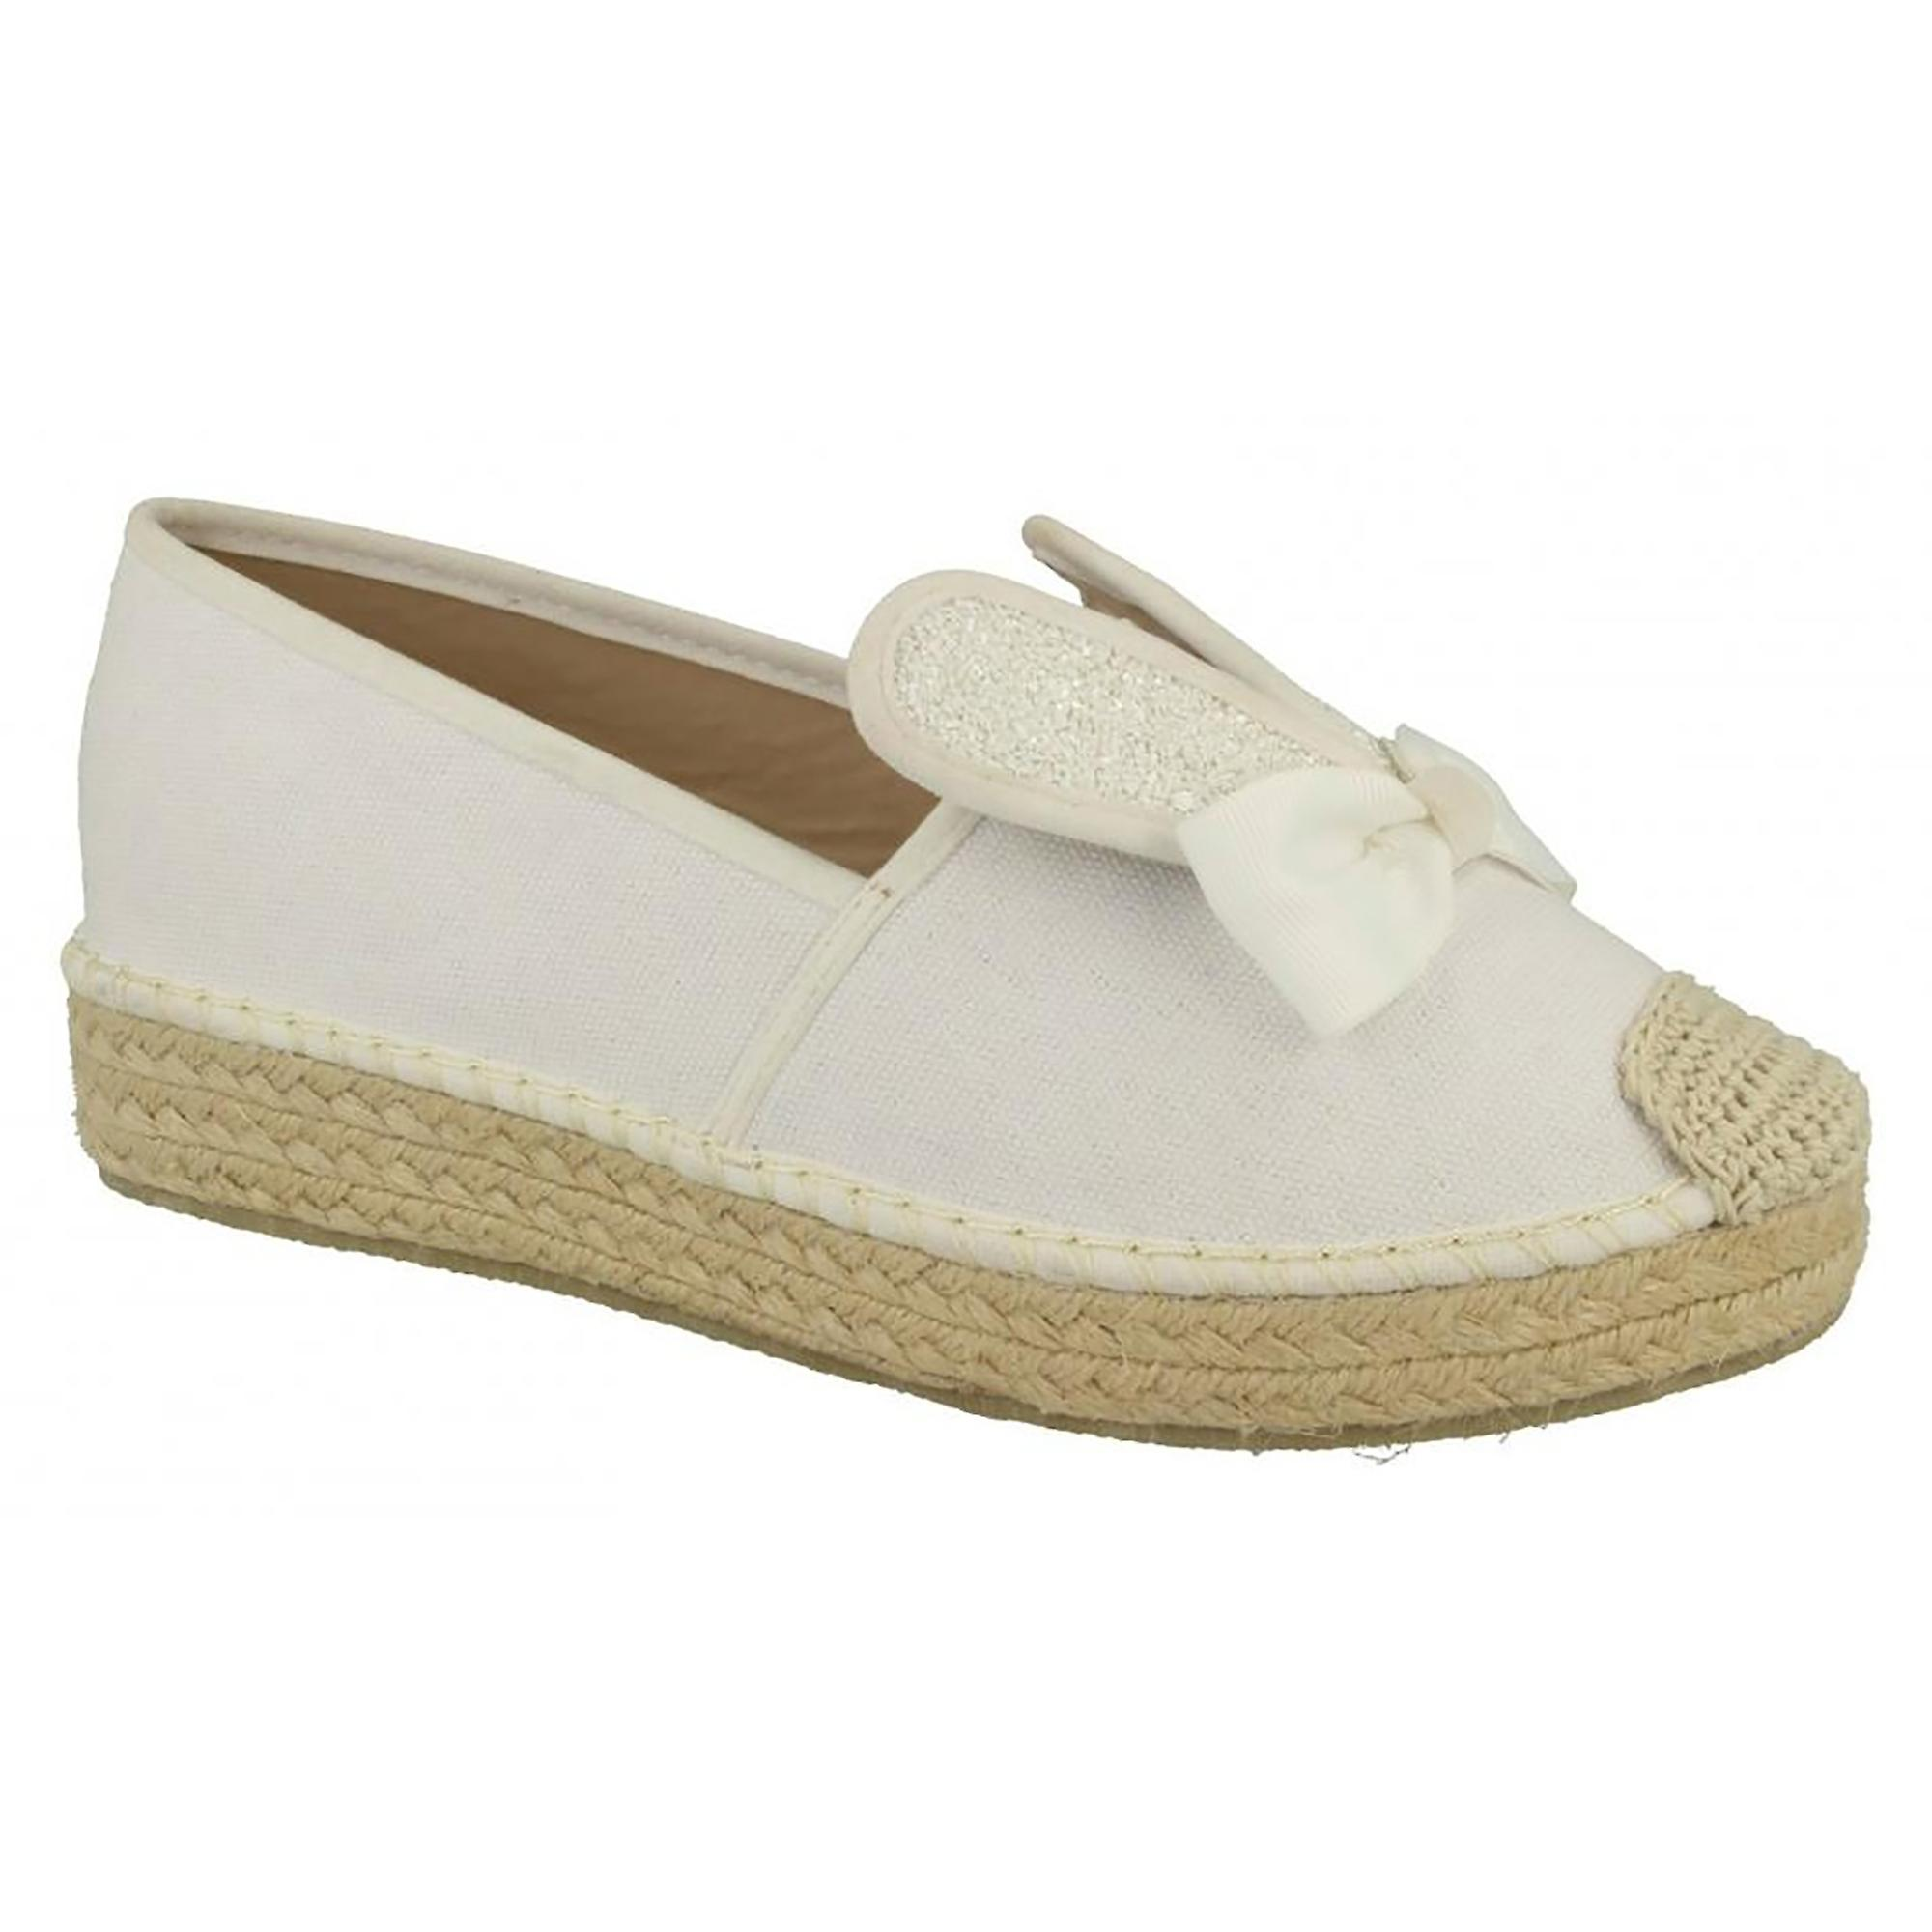 Spot On Womens/Ladies Womens/Ladies Womens/Ladies Bunny Ears Rope Aline Slip On Canvas Shoes 0649fa